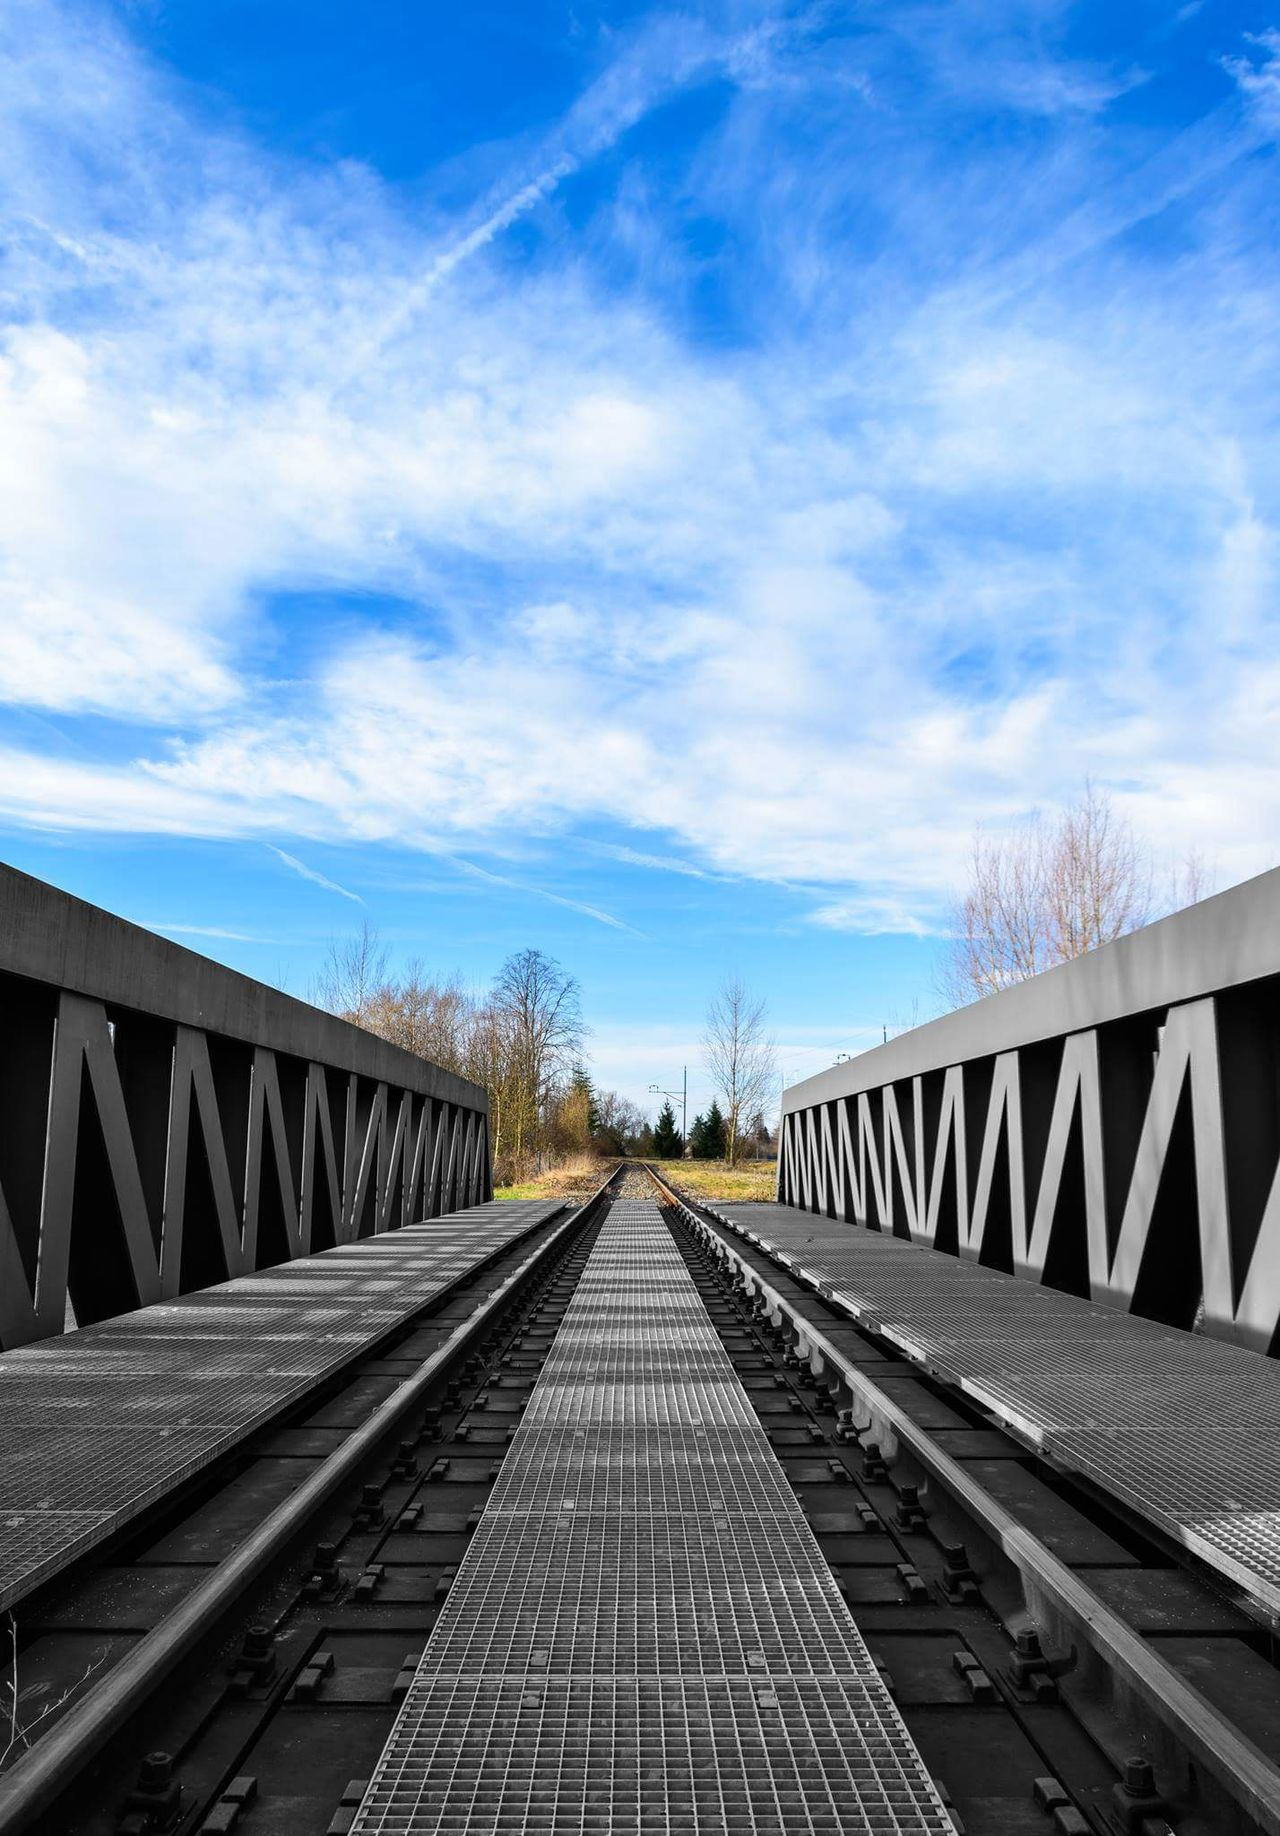 Photoshop artwork Cloud - Sky No People Outdoors Sky Rails Bridge Photography Beauty In Nature Black And White Photography